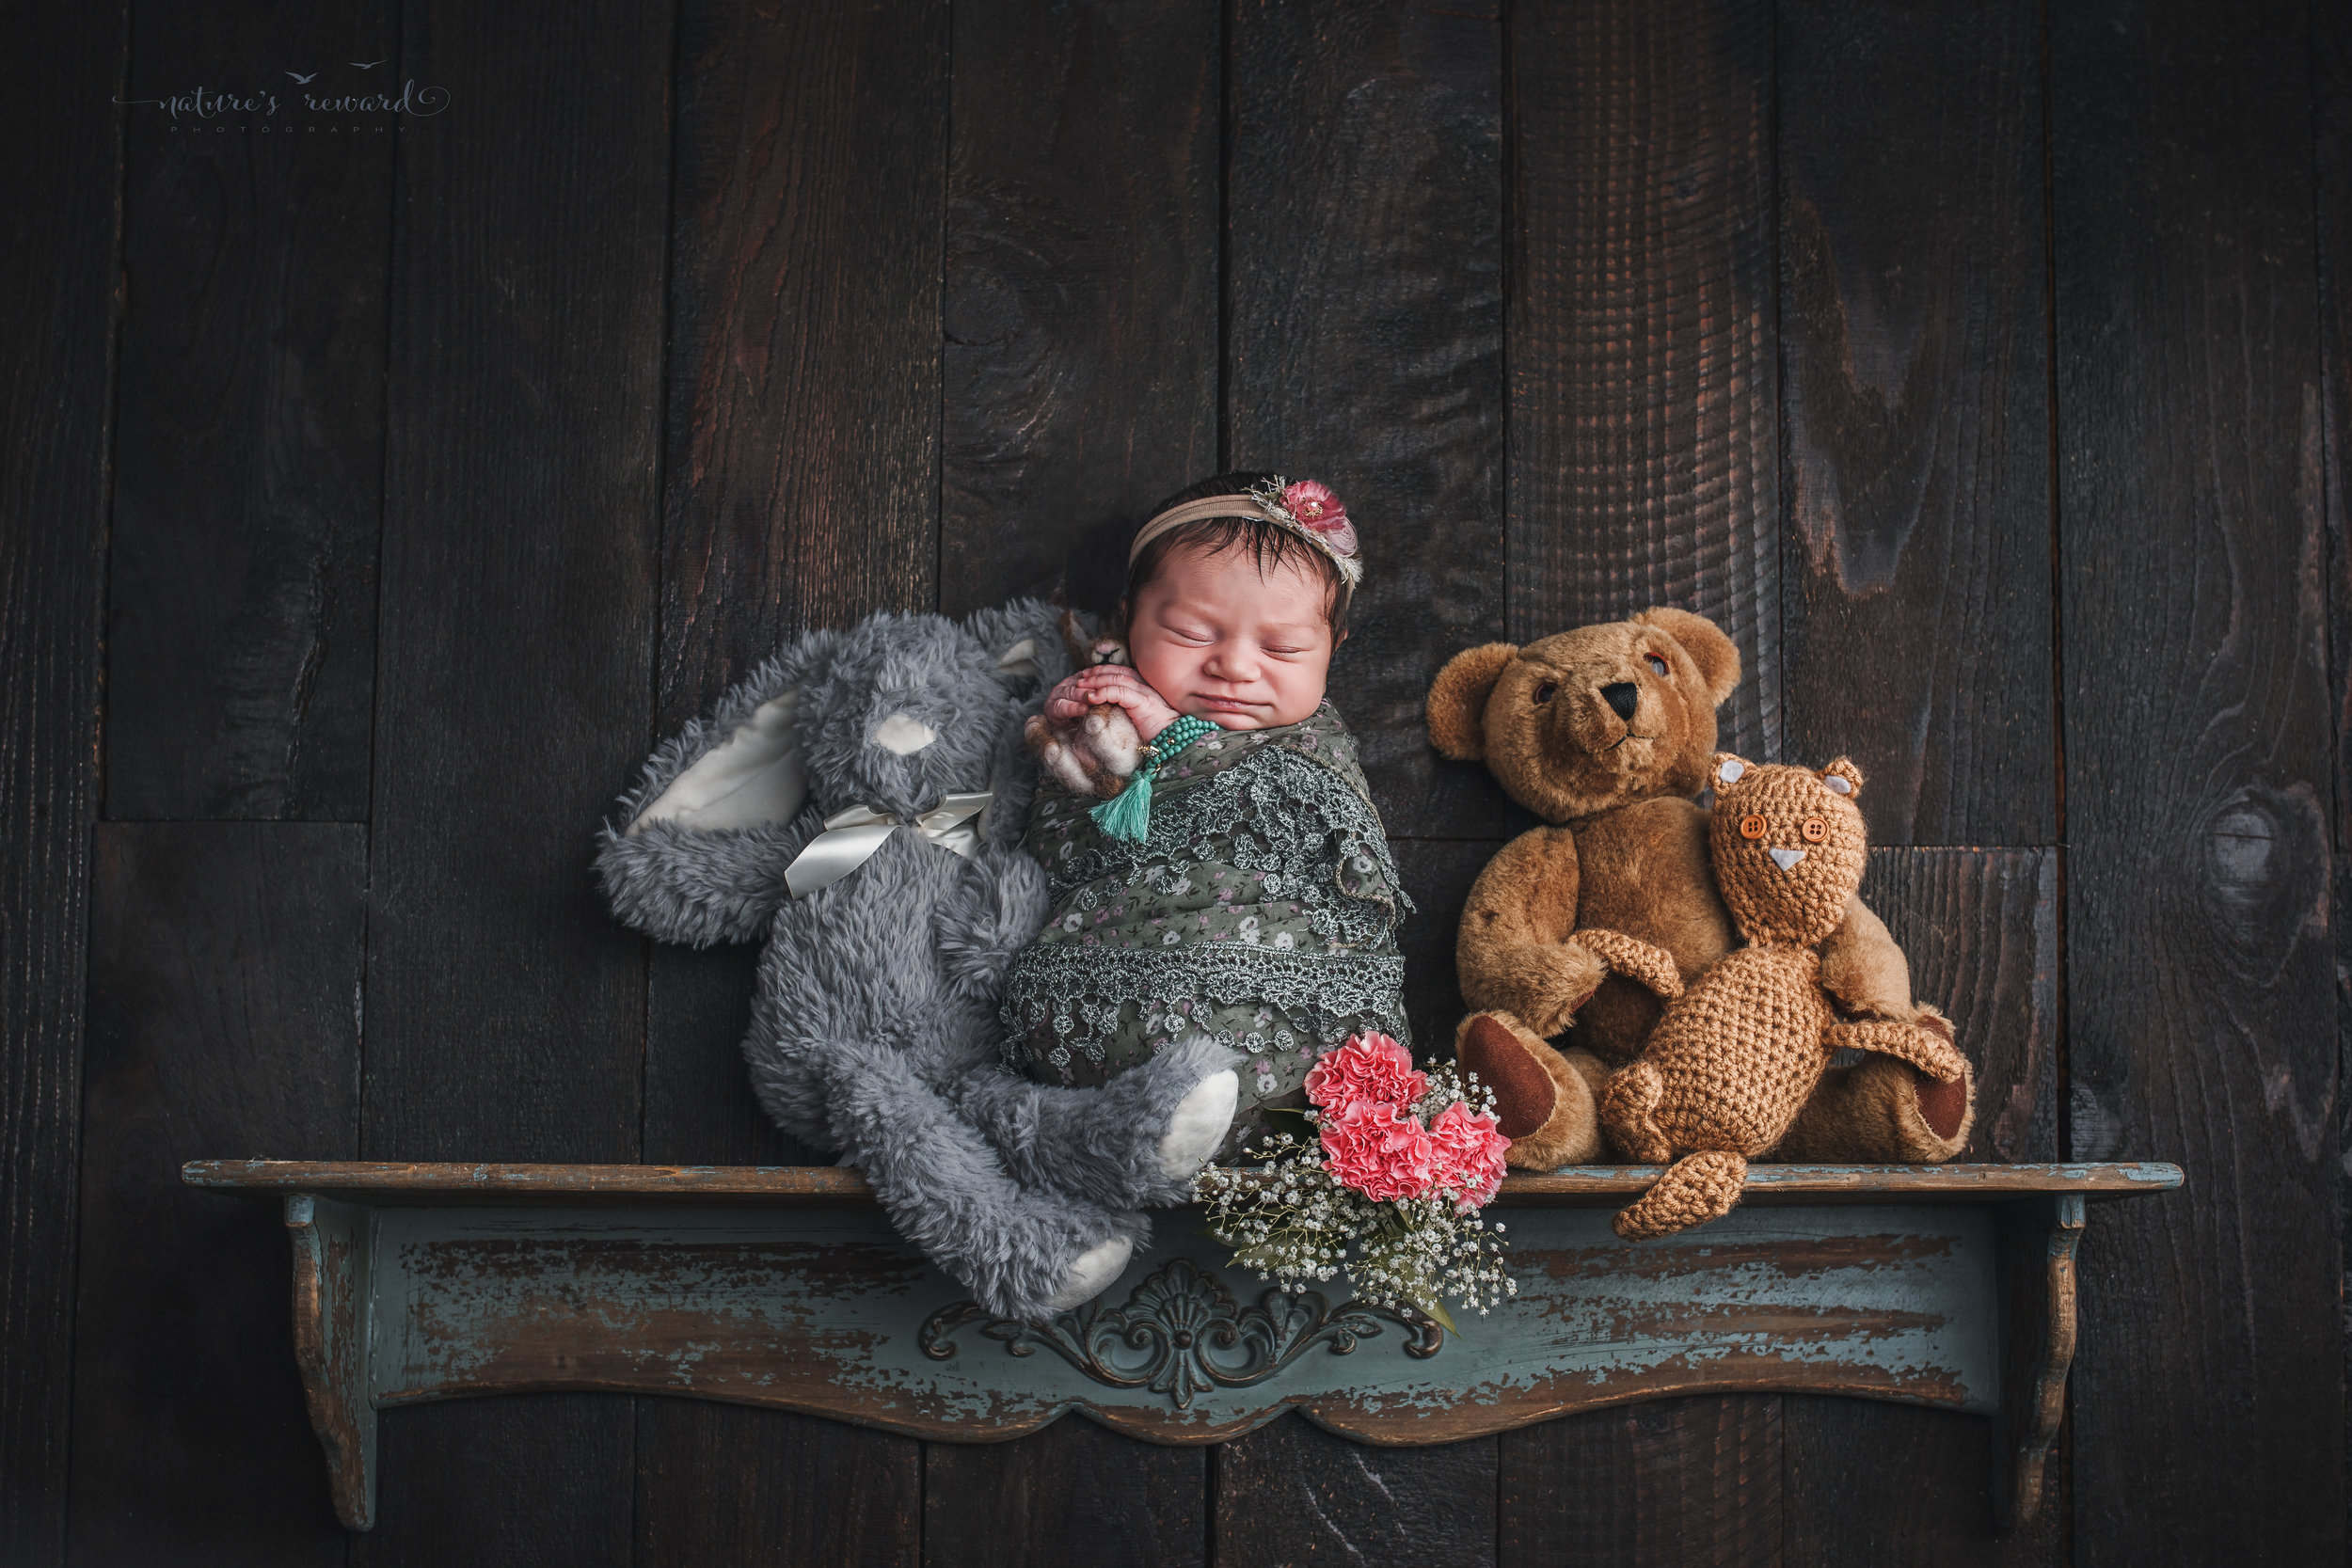 A newborn baby girl on a shelf telling her birth story, a portrait by Nature's Reward Photography.